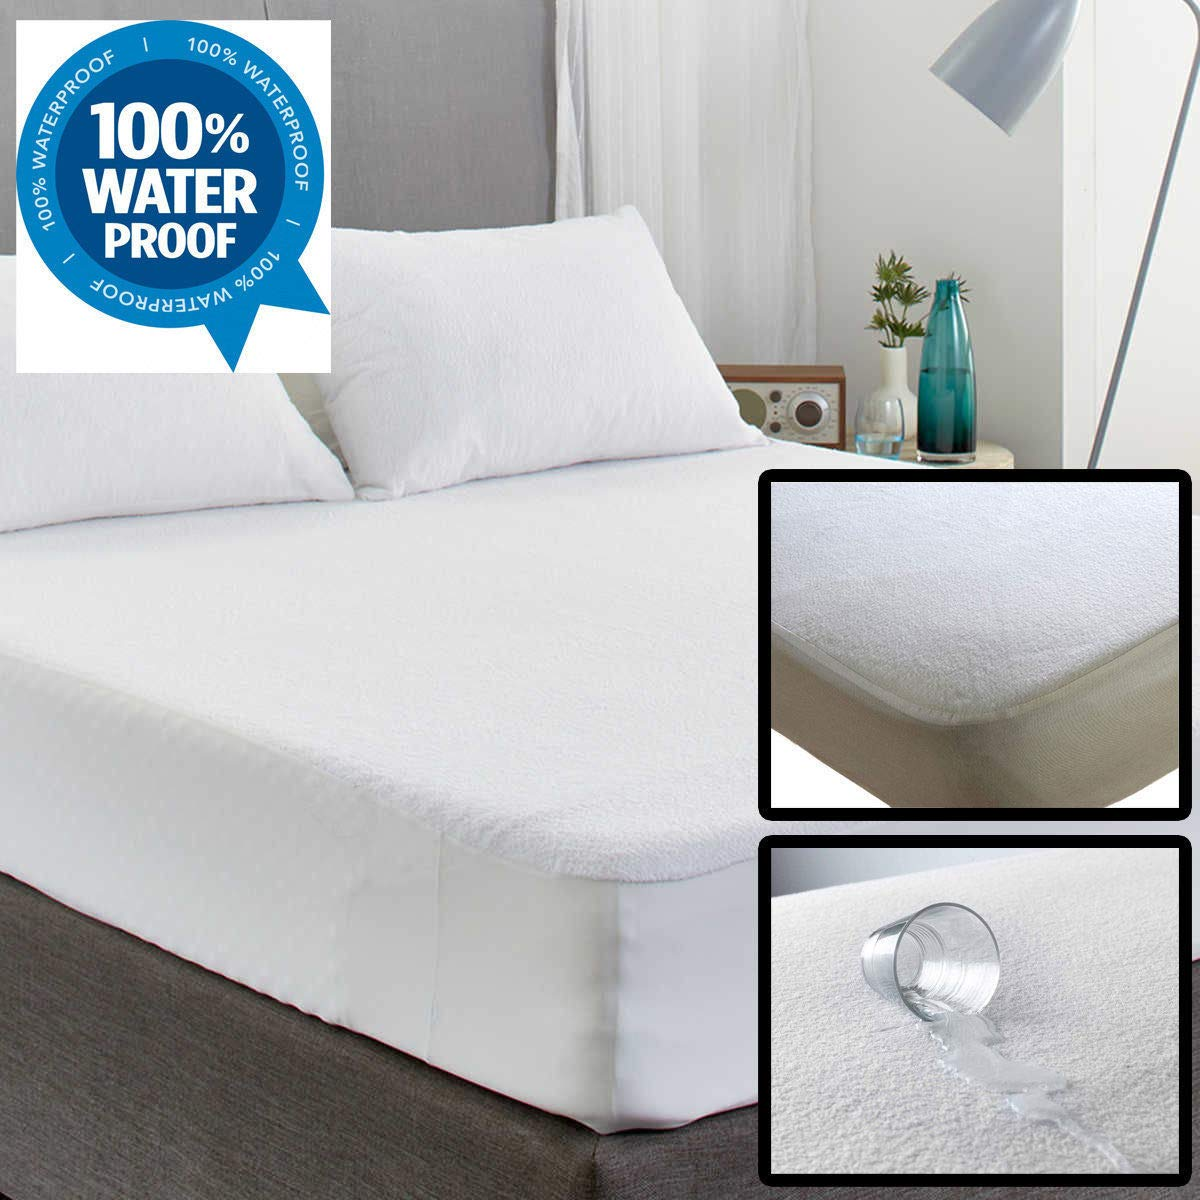 Anti Bacterial Single King Cot Bed S-King Cot Bed and Pillow Pair. Cot Double Non Noisy IMFAA 40CM//16 Extra Deep Terry Towel 100/% Water Proof Mattress Protector Topper Cover